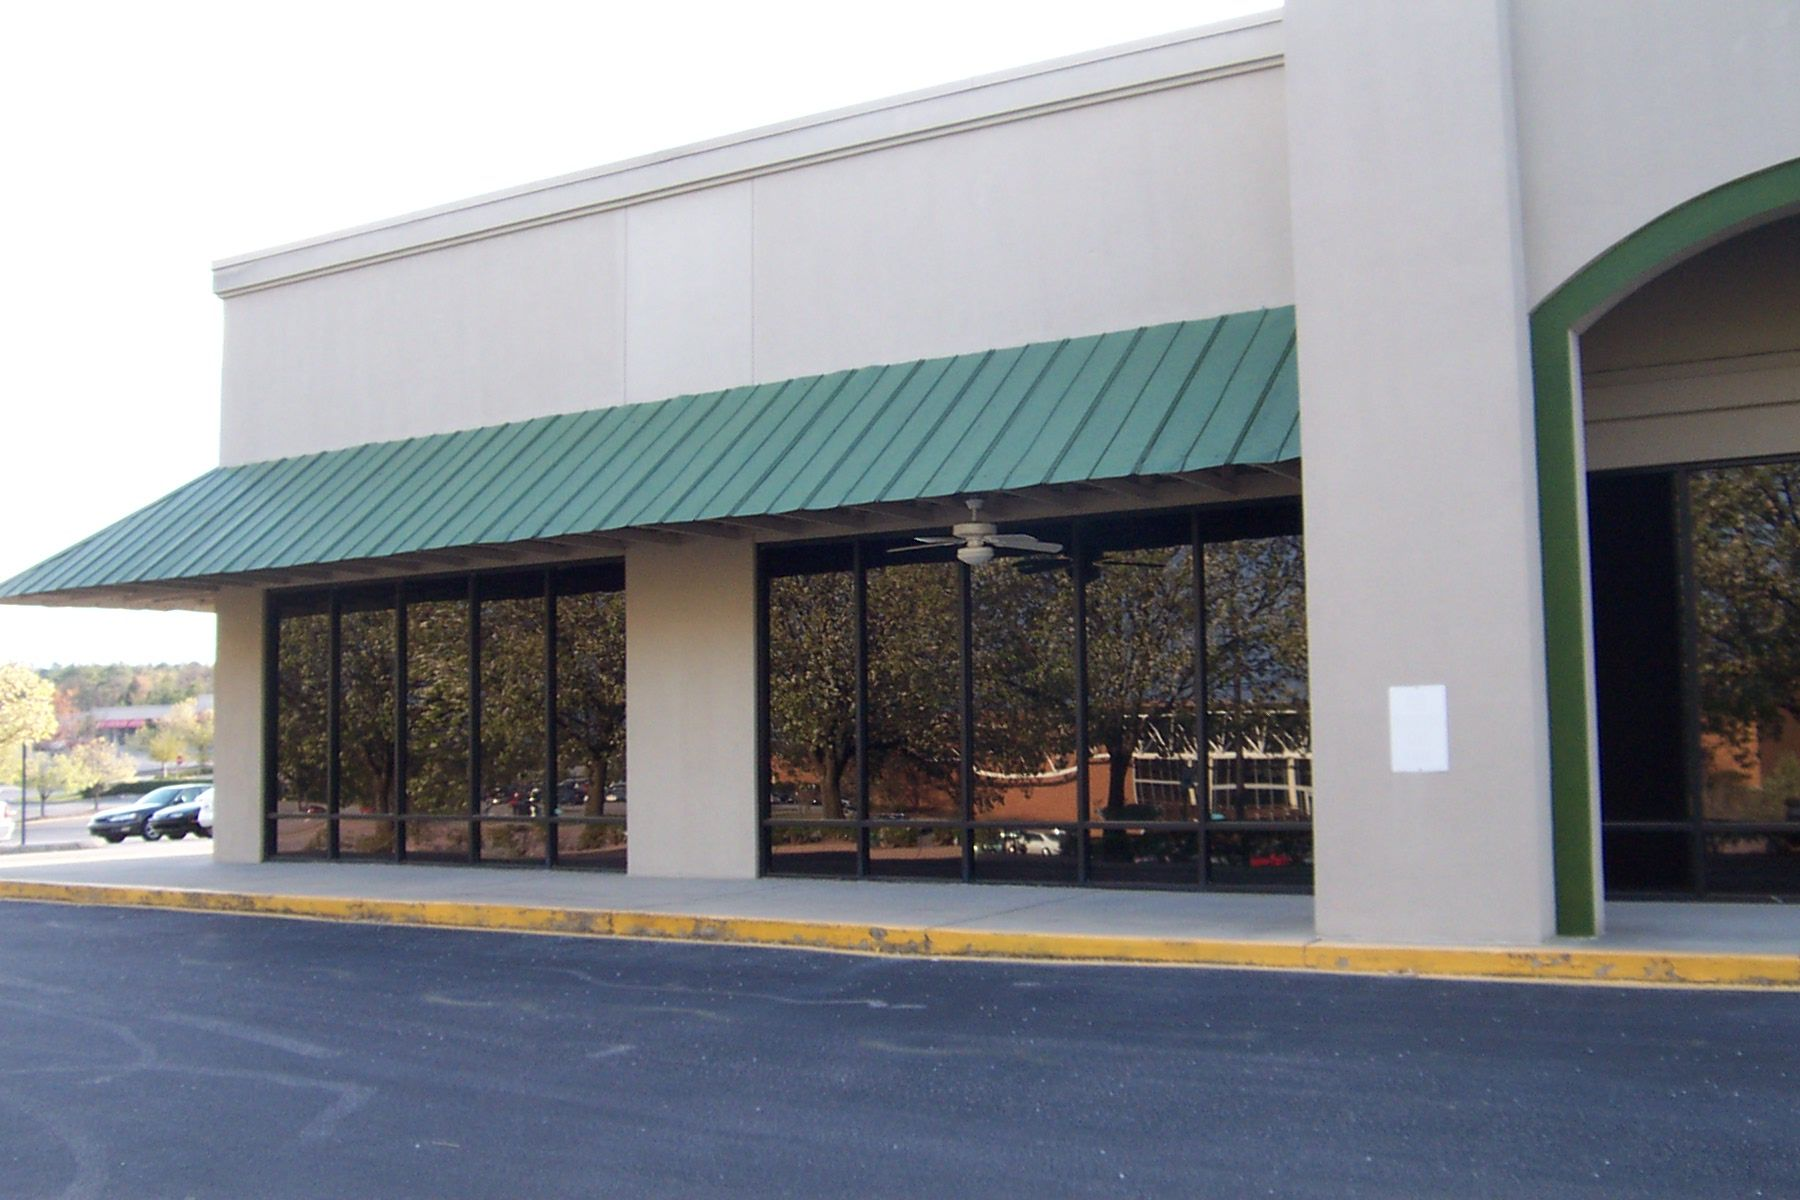 Image Result For Metal Facade Awning Strip Mall Shopping Center